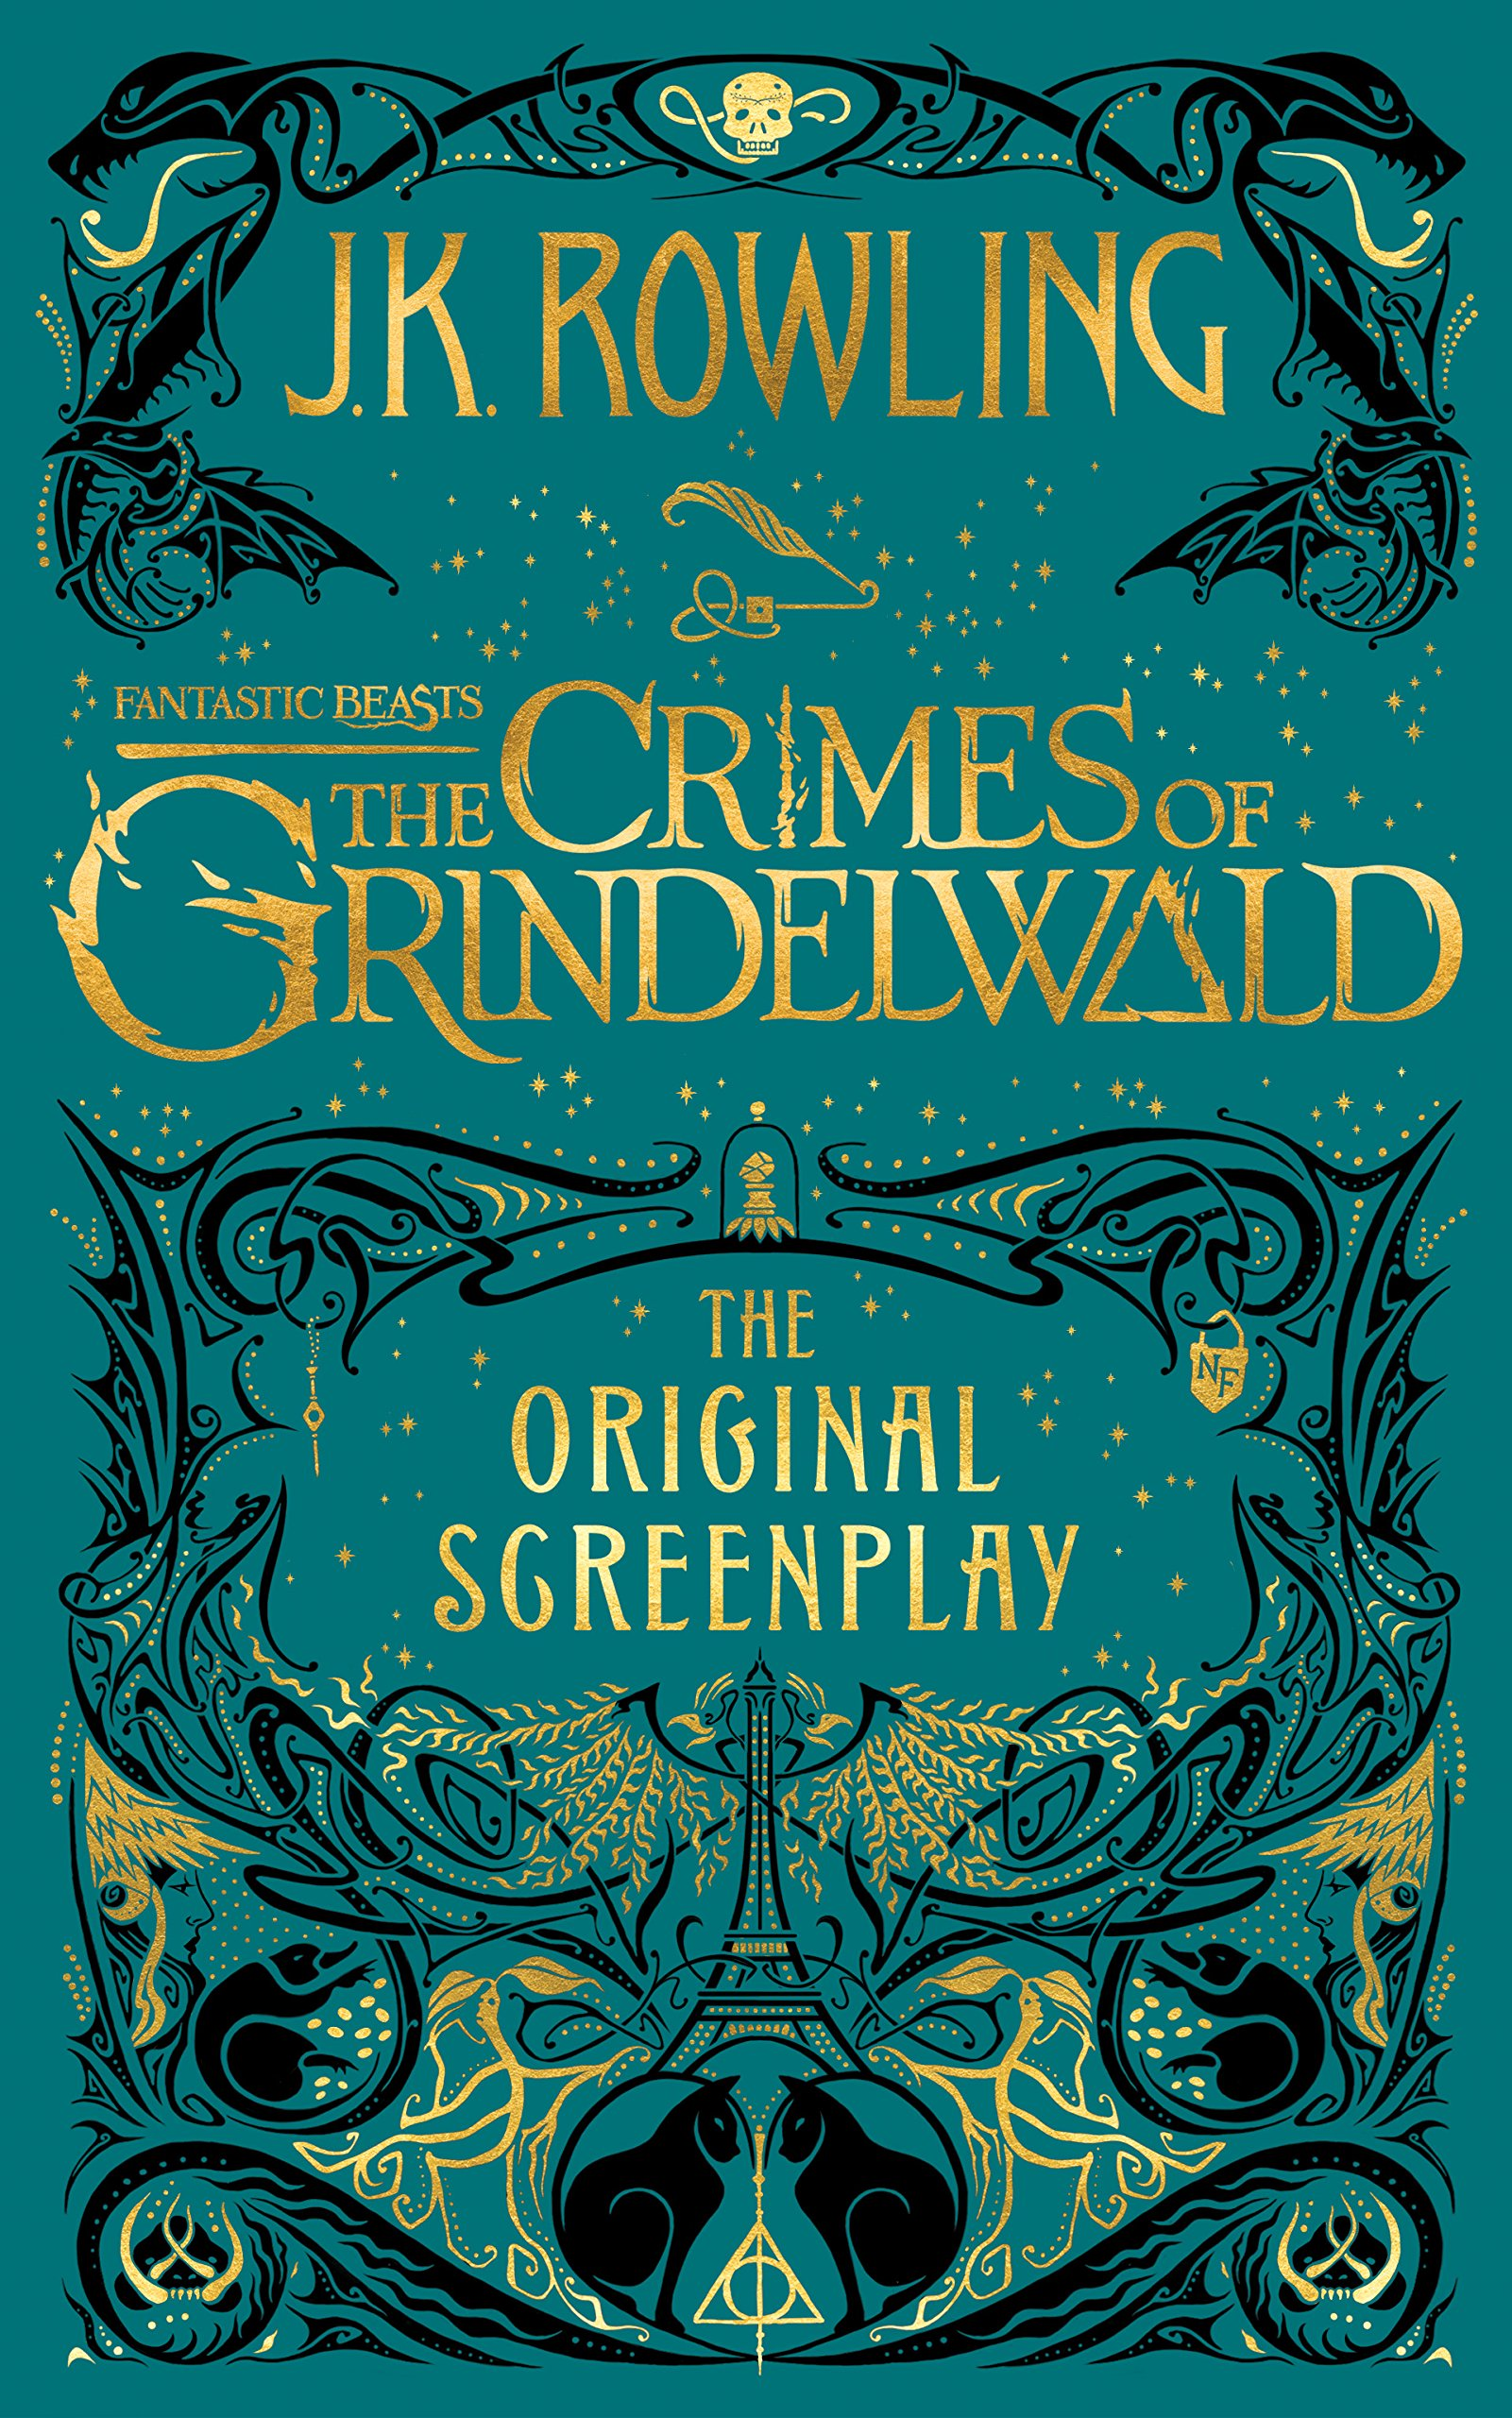 Buy Fantastic Beasts: The Crimes of Grindelwald ― The Original Screenplay (Harry  Potter) Book Online at Low Prices in India | Fantastic Beasts: The Crimes  of Grindelwald ― The Original Screenplay (Harry